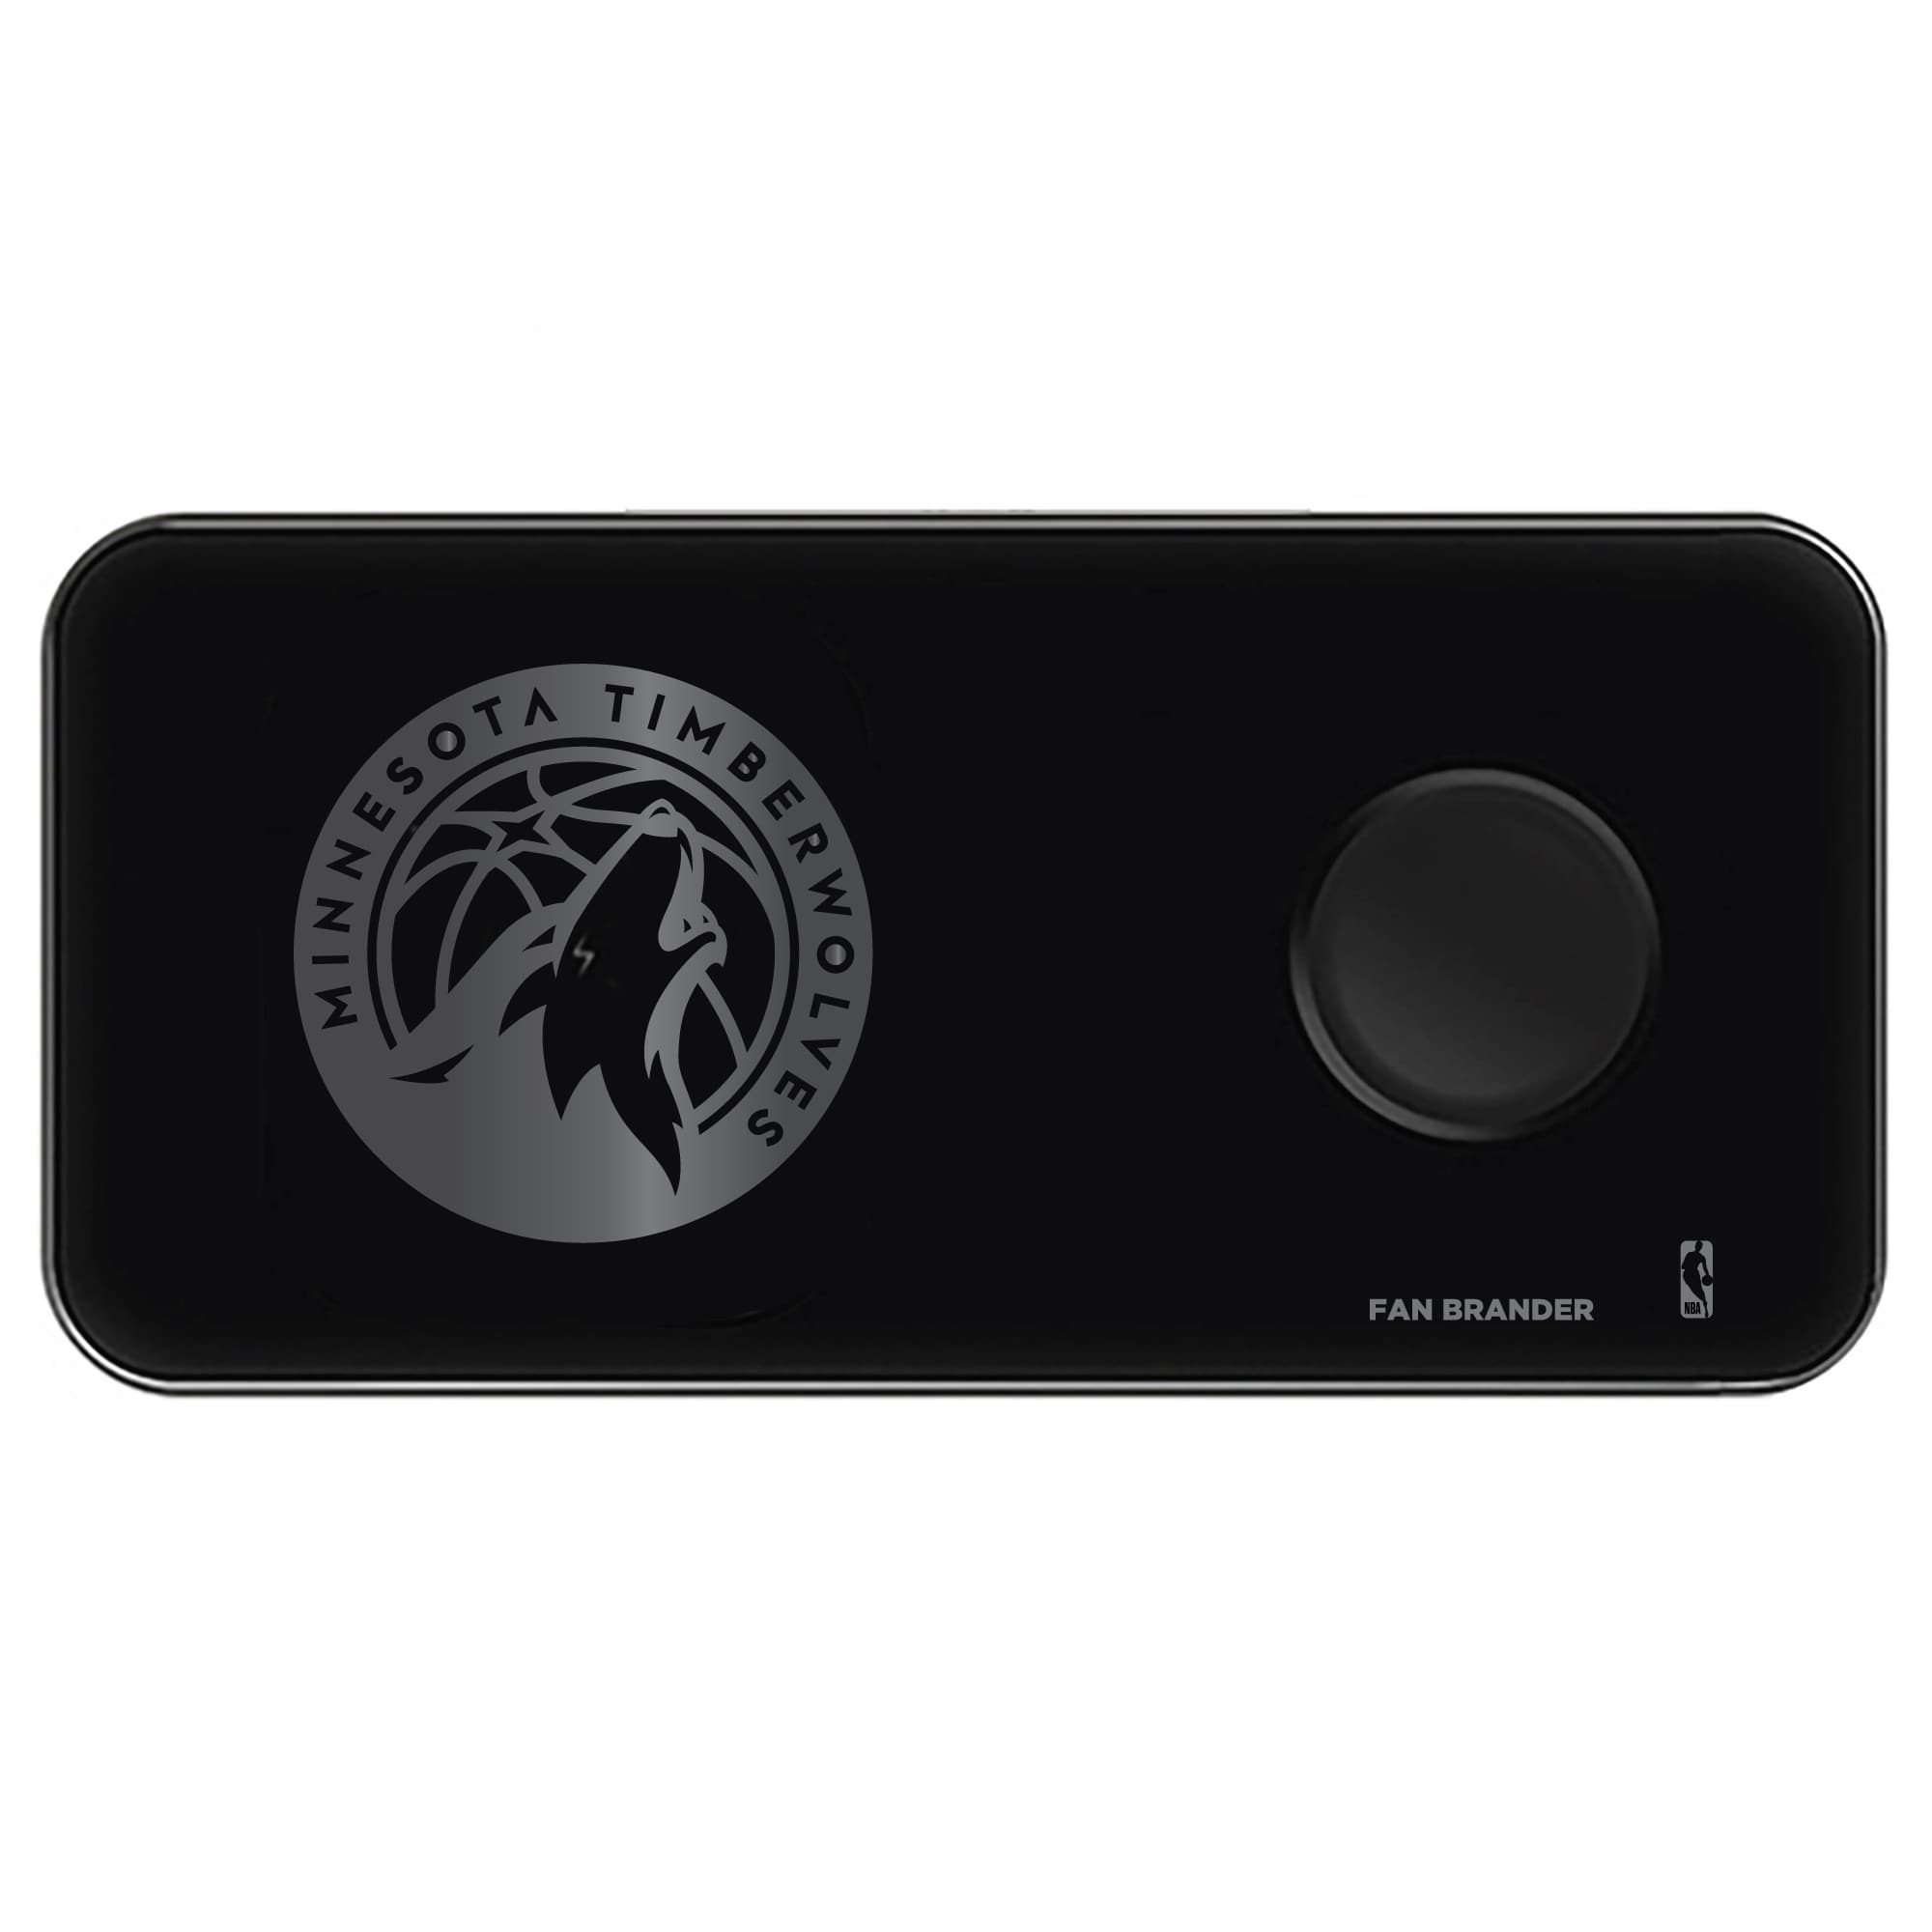 Minnesota Timberwolves 3-in-1 Glass Wireless Charge Pad - Black